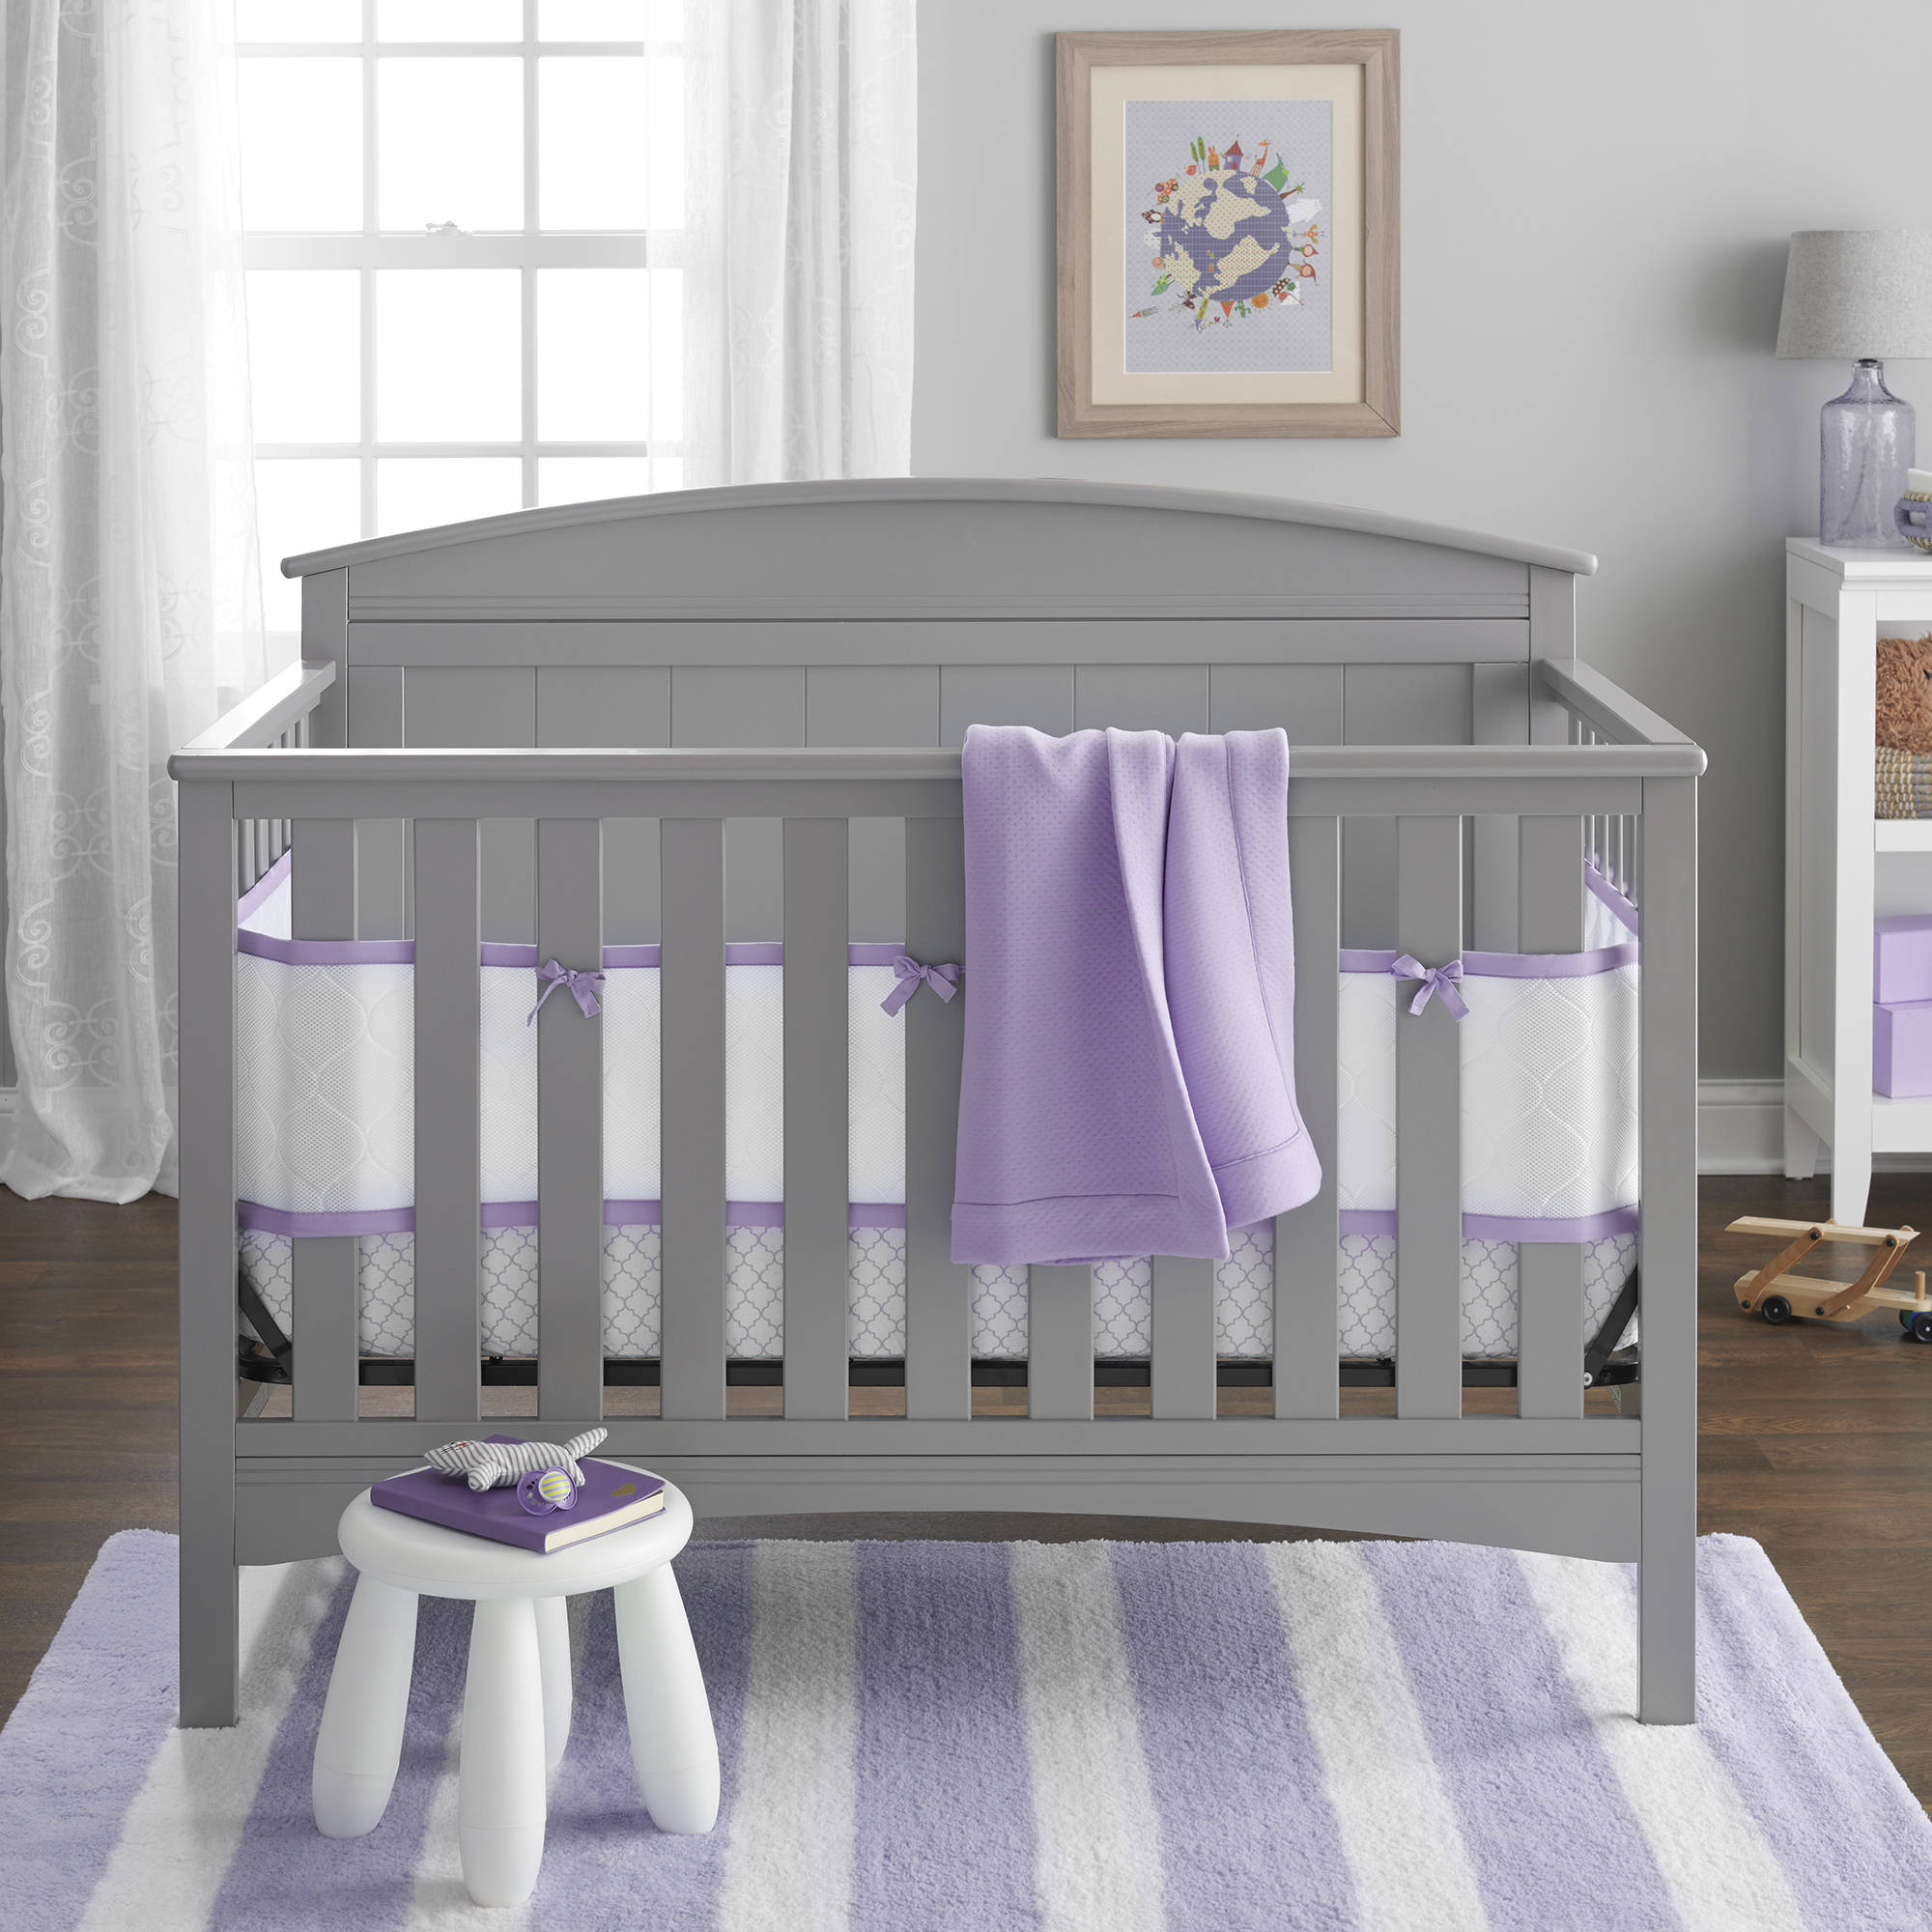 BreathableBaby 4-Piece Deluxe Breathable Embossed Crib Bedding Set, Lavender